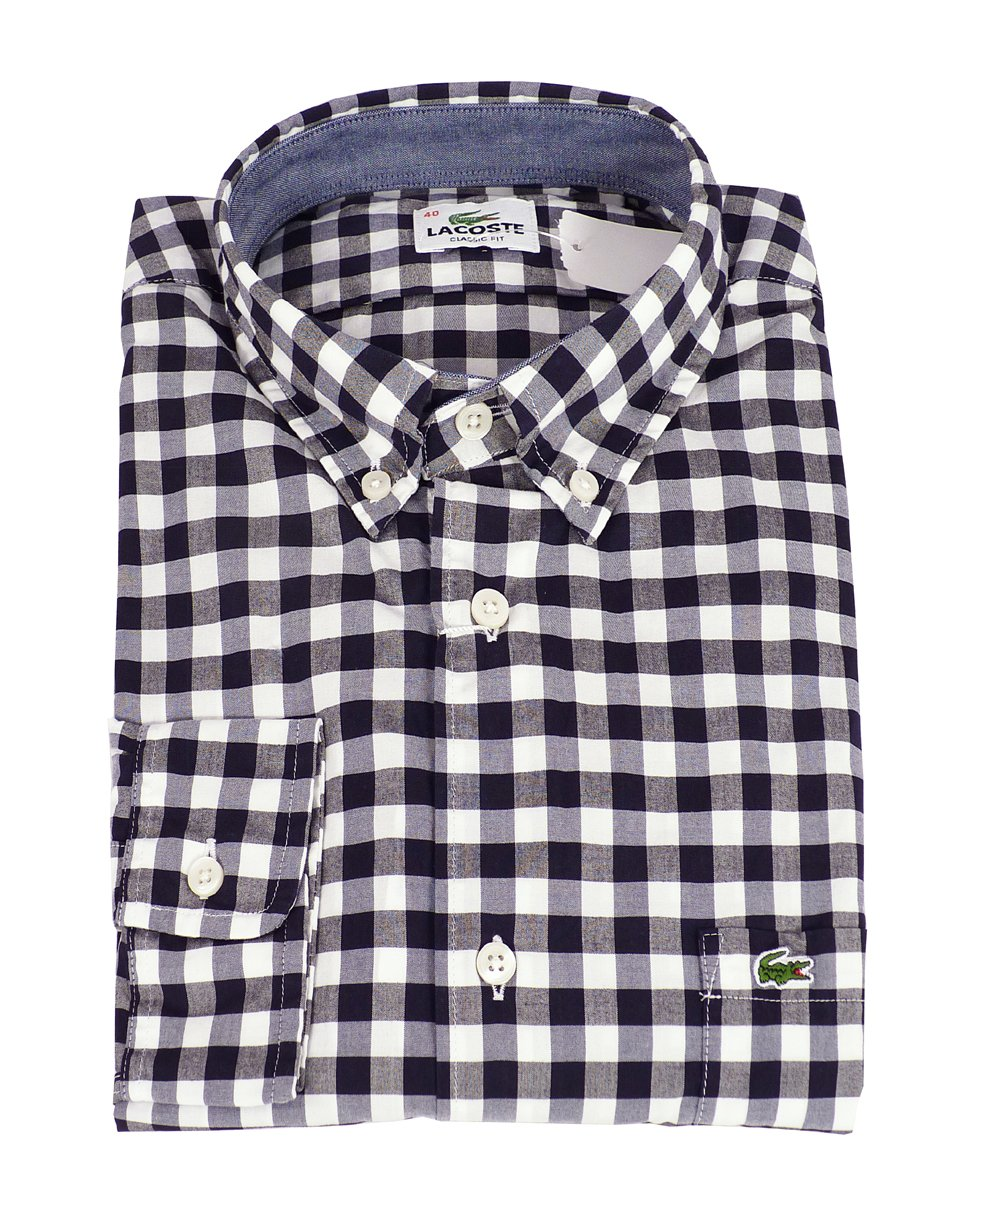 Lacoste Black & White Check Shirt - Lacoste from Jonathan Trumbull UK